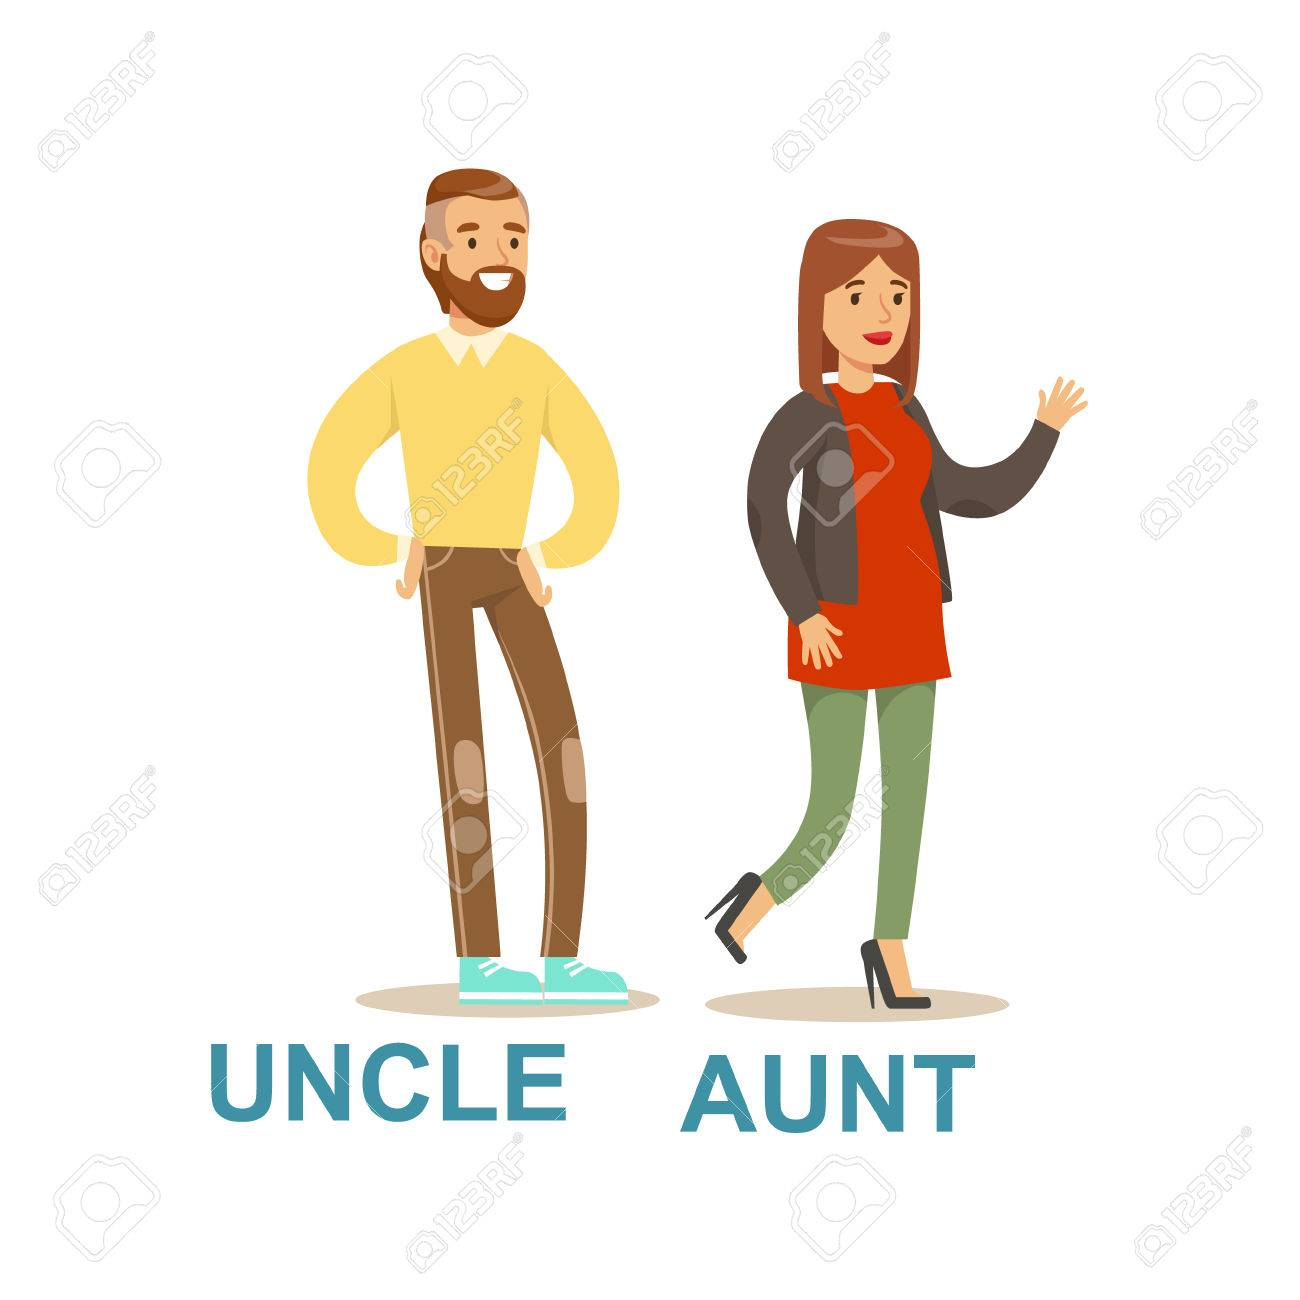 uncle and aunt happy family having good time together illustration